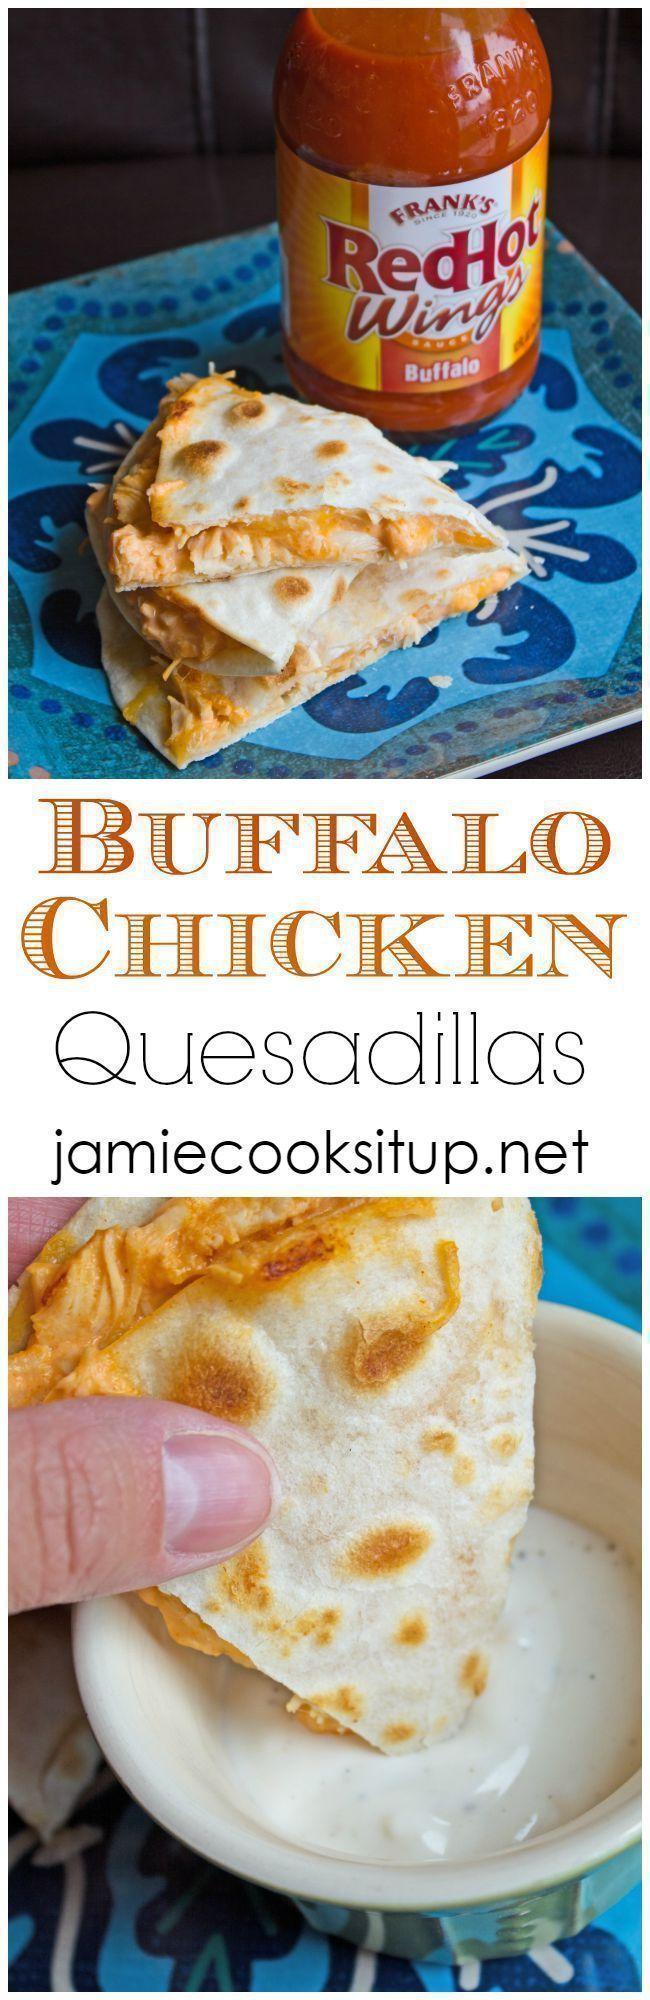 Over 30 Burrito, Chimichanga, and Quesadilla Mexican Recipes #chickenbreastrecipeseasy